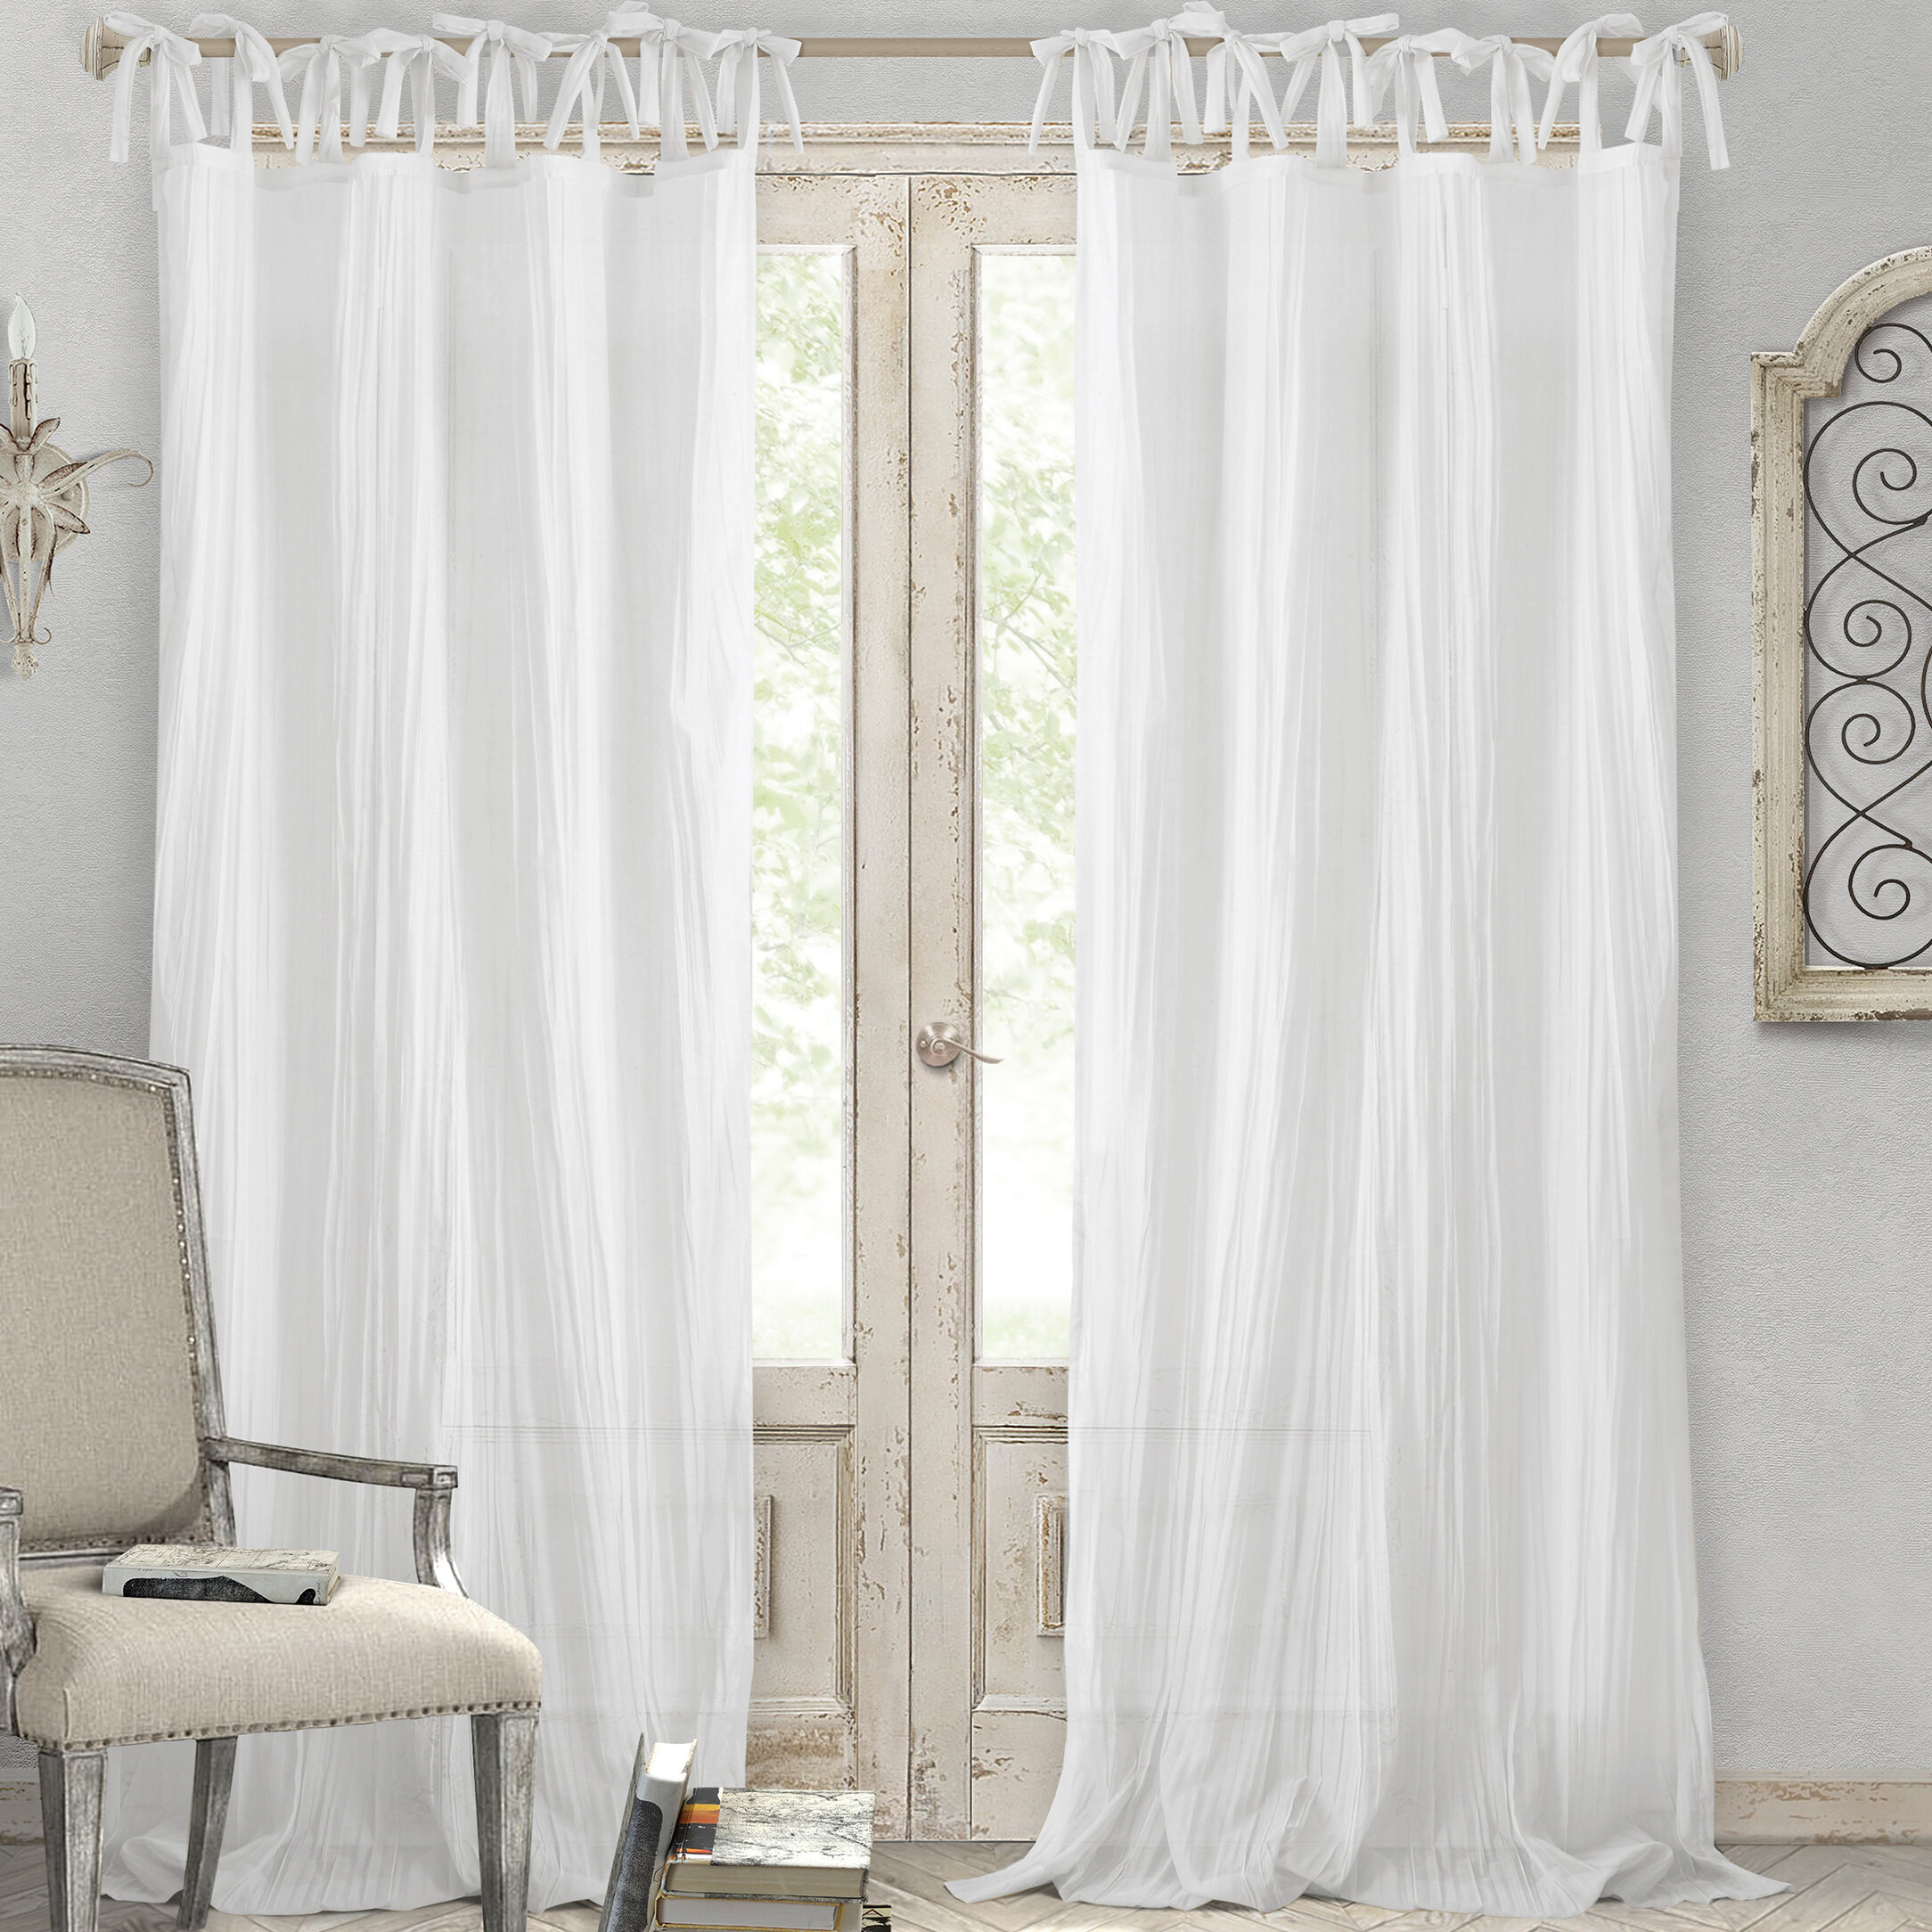 Magnificent Cottage Country Curtains Drapes Birch Lane Download Free Architecture Designs Jebrpmadebymaigaardcom